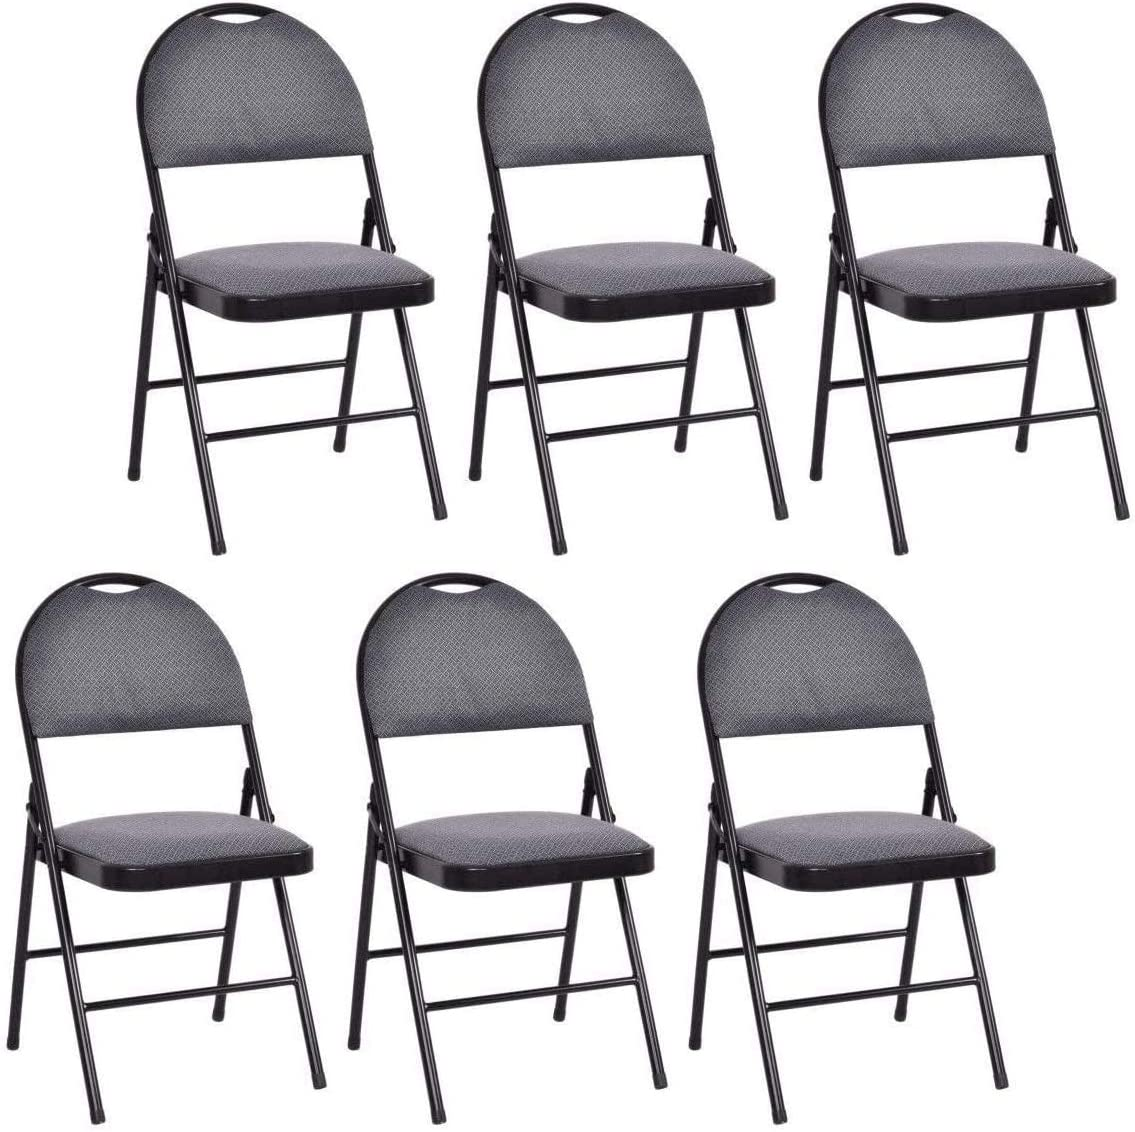 Casart 6-Pack Folding Chair with Clearance sale SALE Limited time Upholstered Seat and Padded Bac